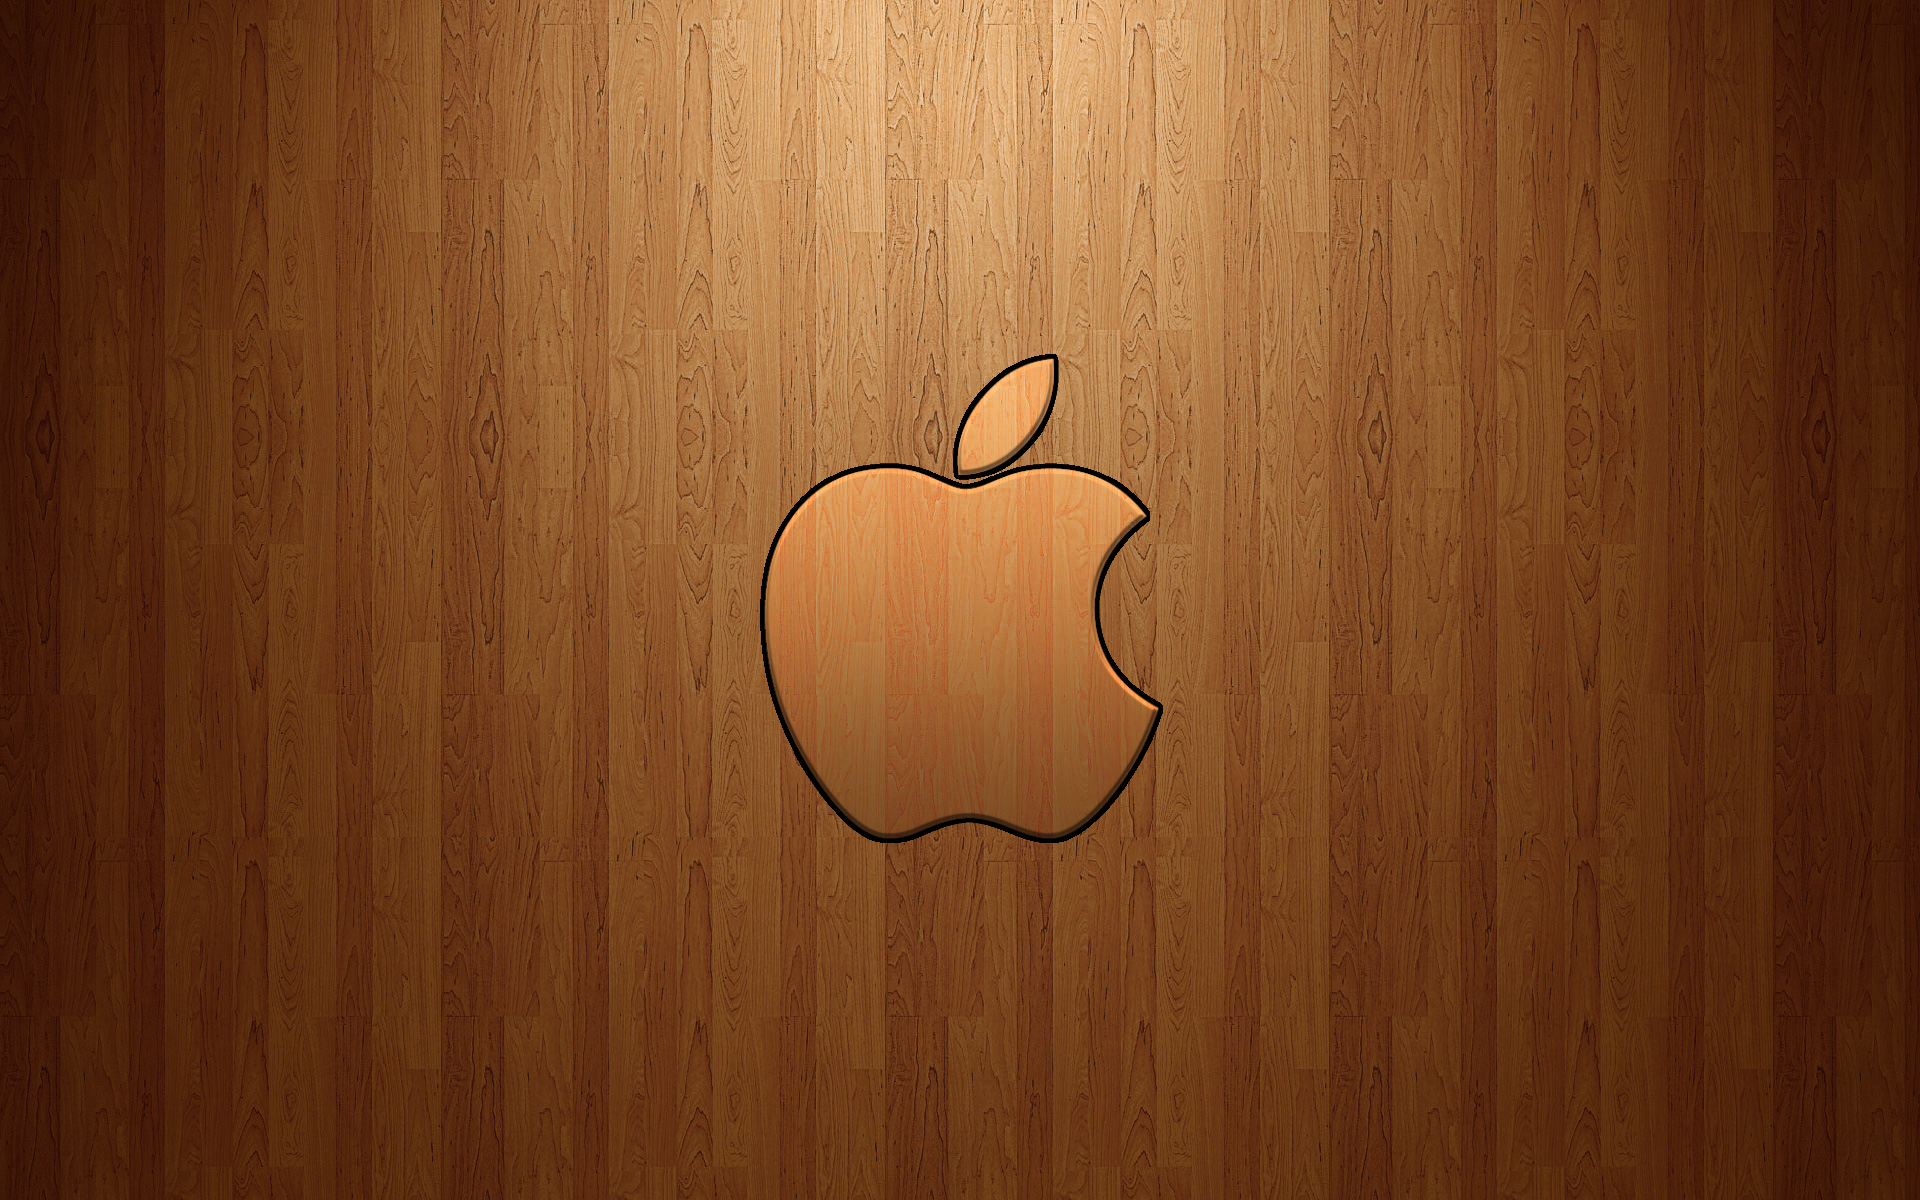 new apple logo - bing images | apple, wood, wallpaper! | pinterest